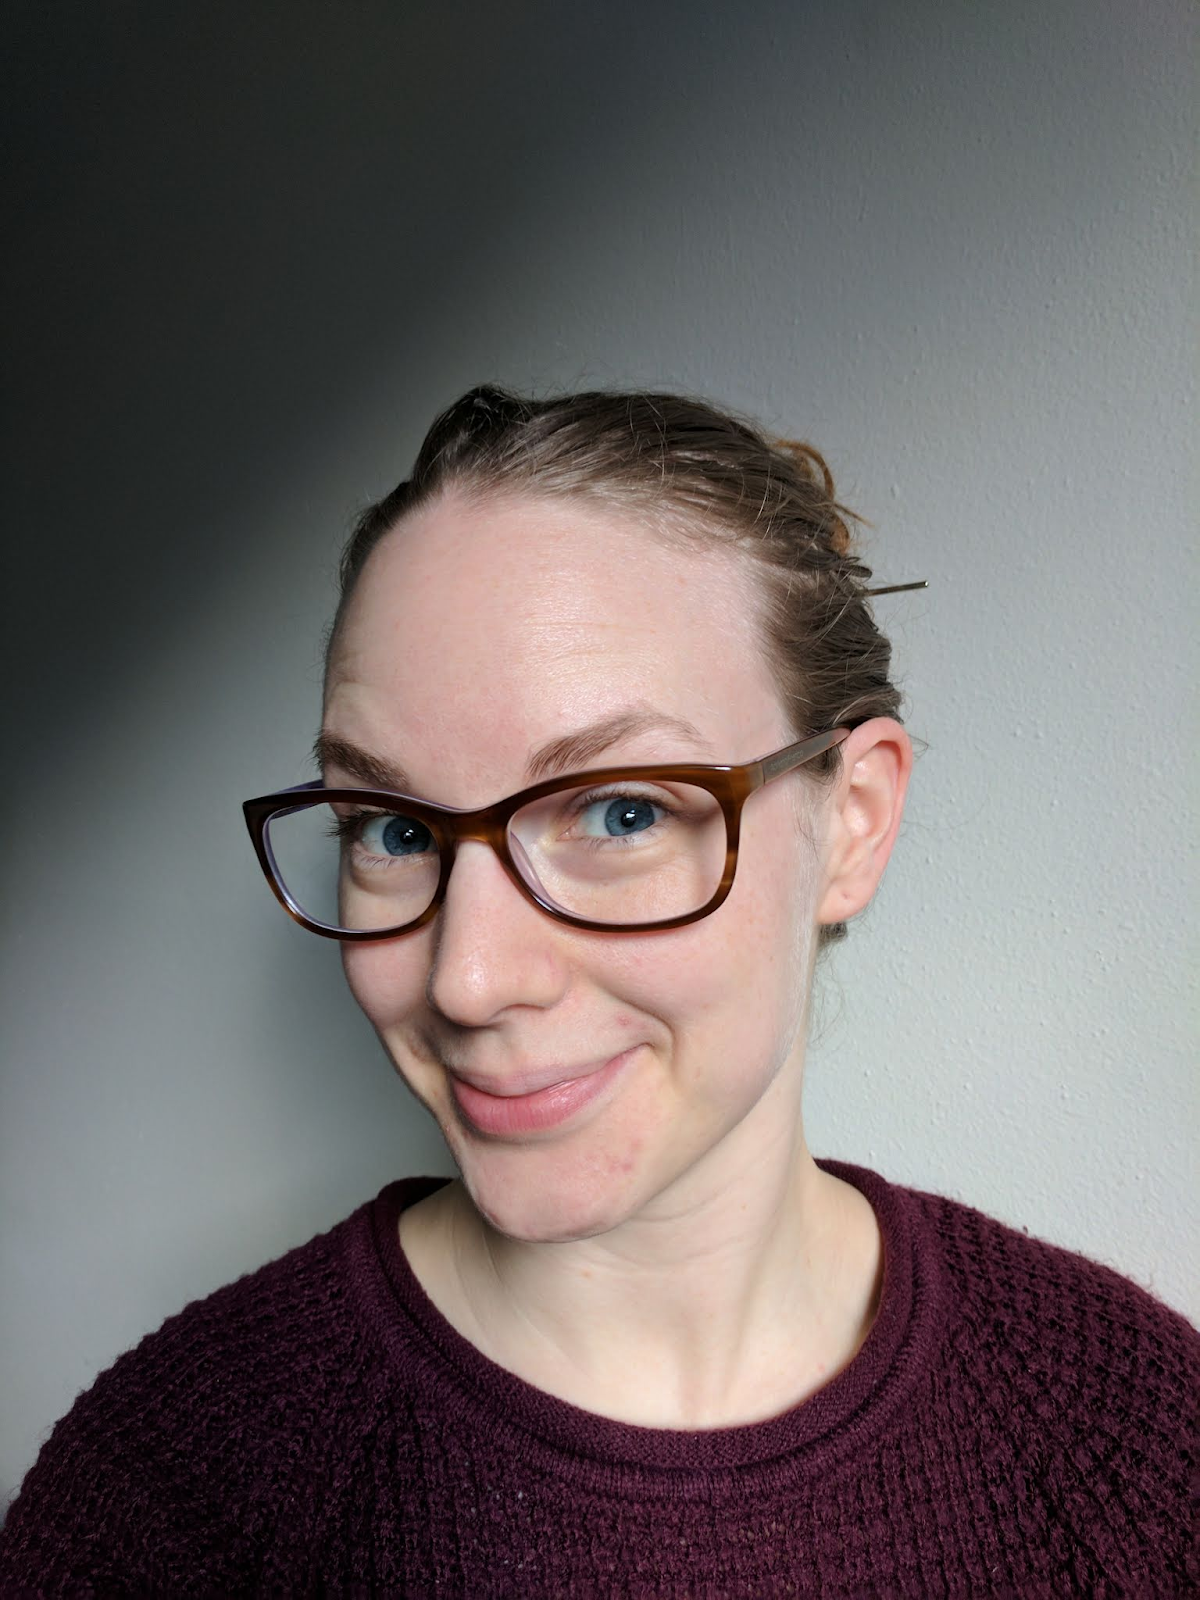 /interview-with-data-scientist-at-kaggle-dr-rachael-tatman-8bc61f9efdb9 feature image